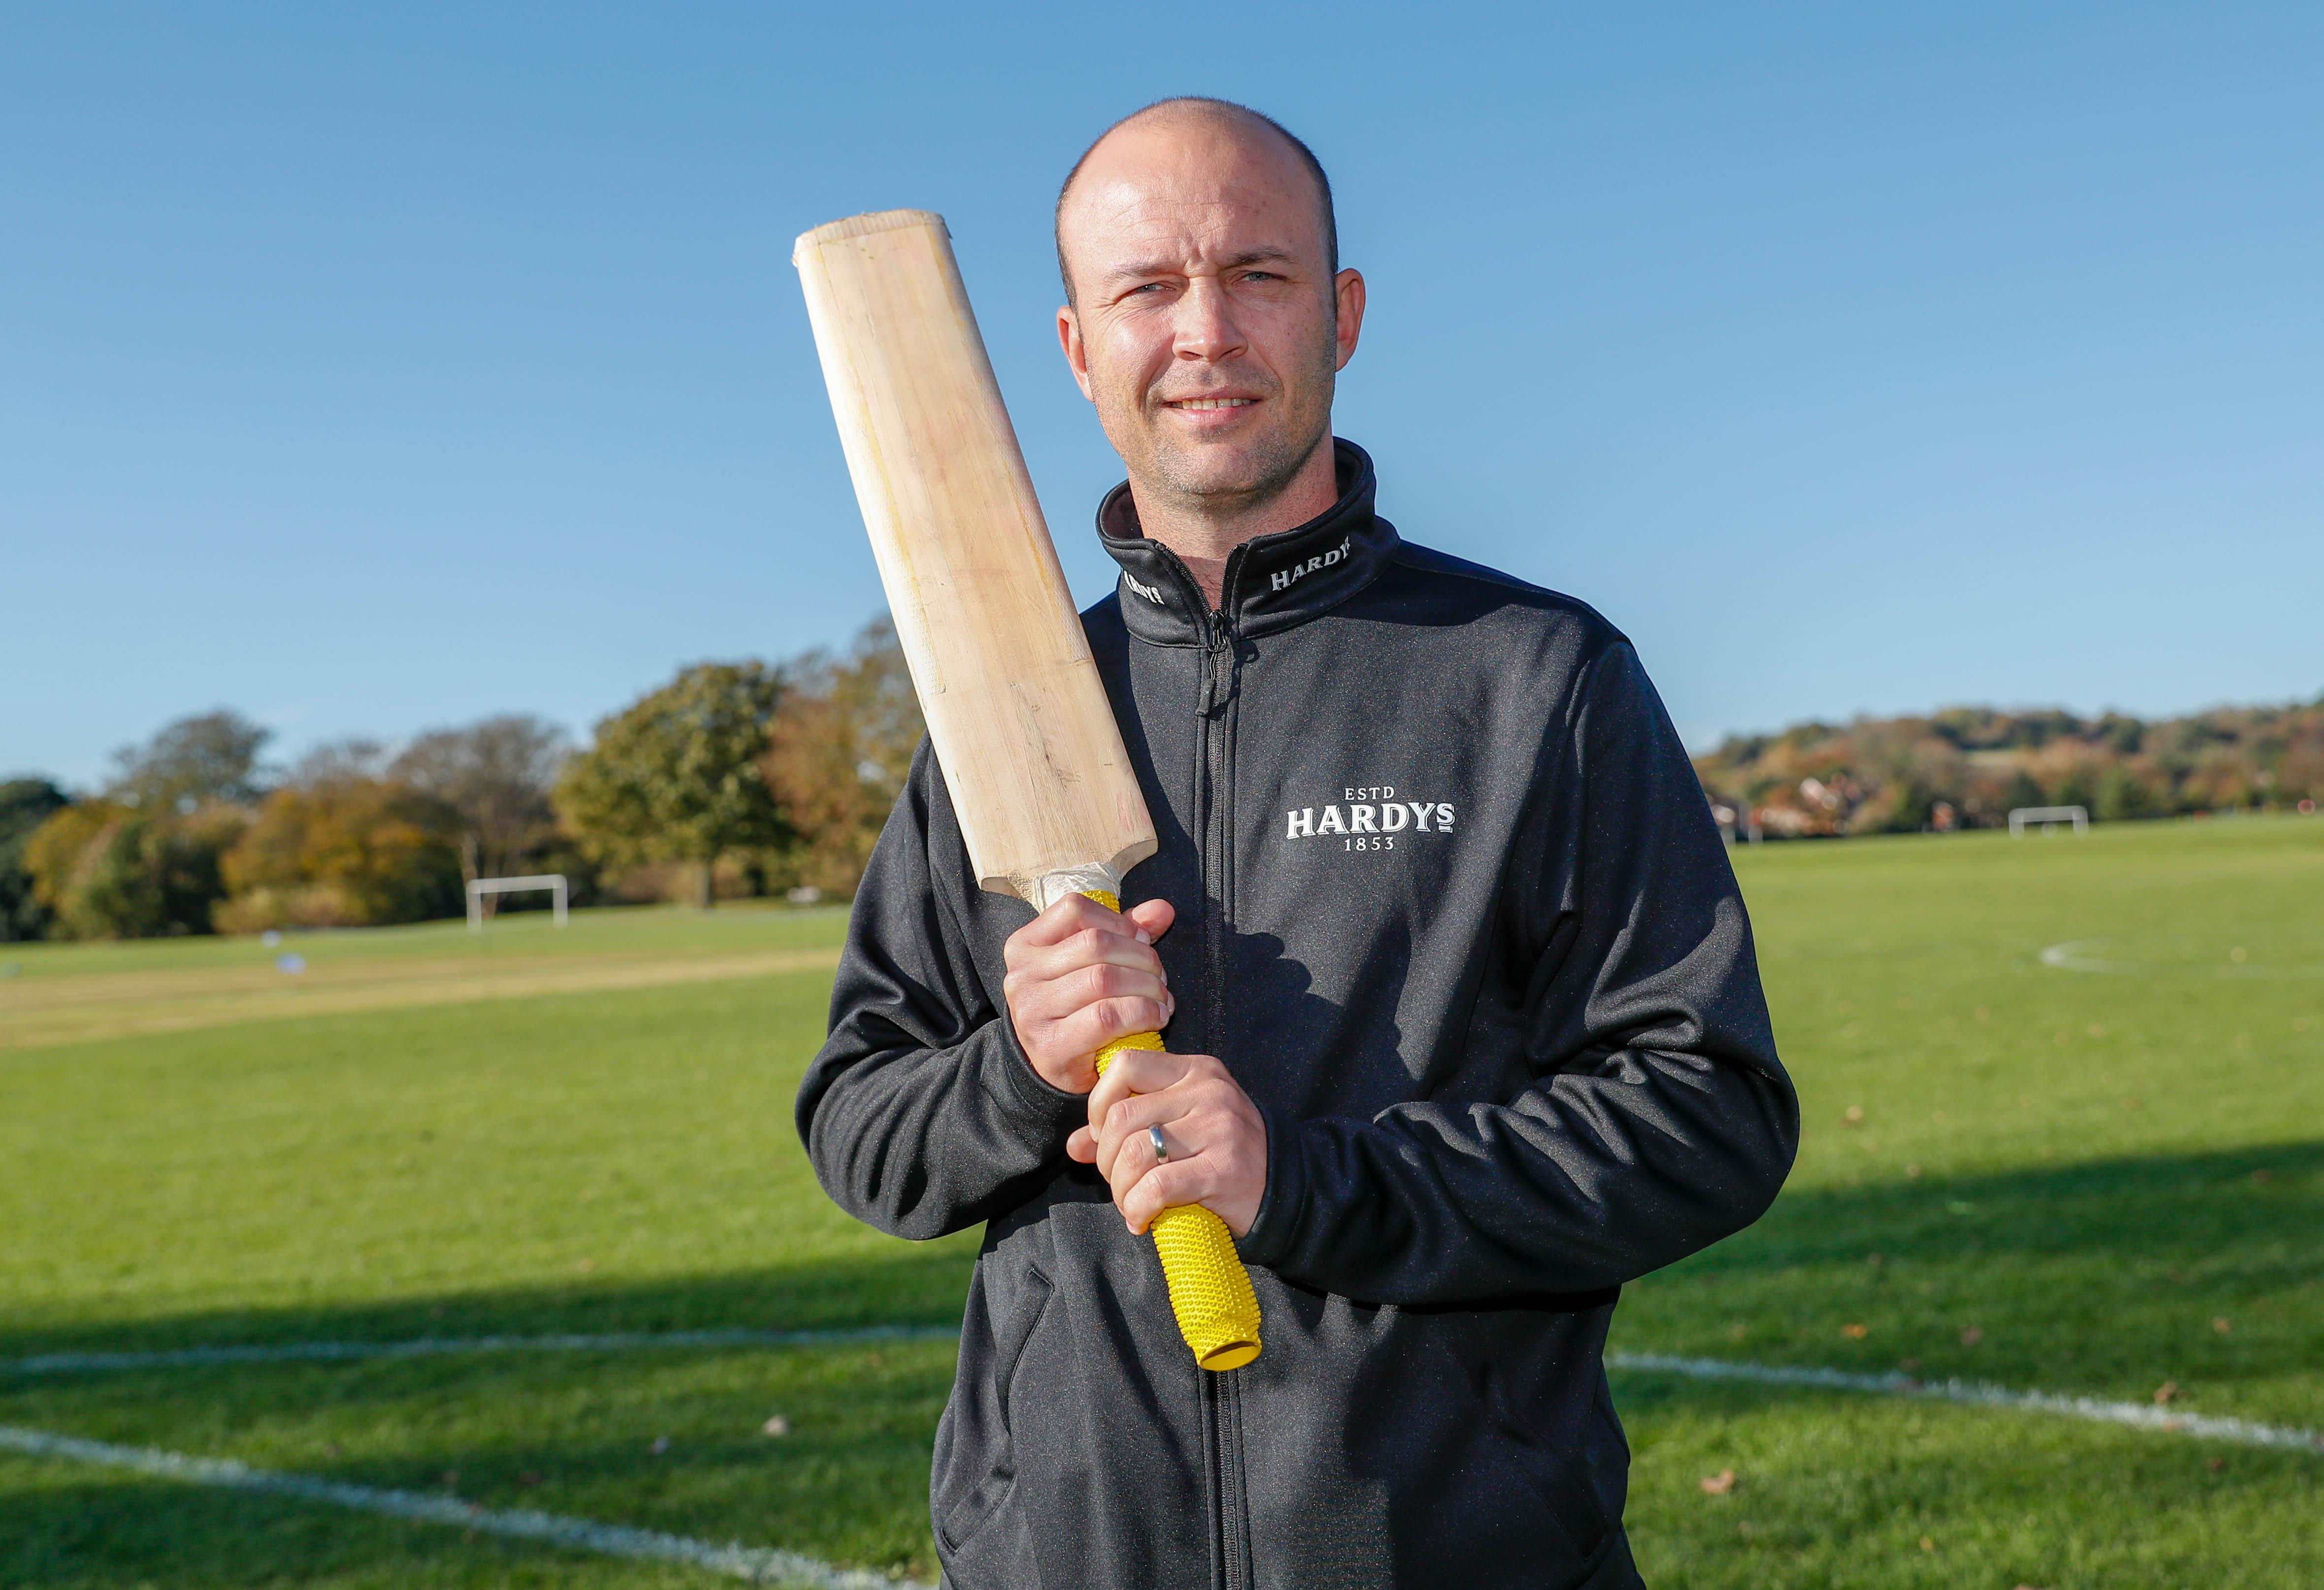 Jonathan Trott is embarking on his latest career, in coaching